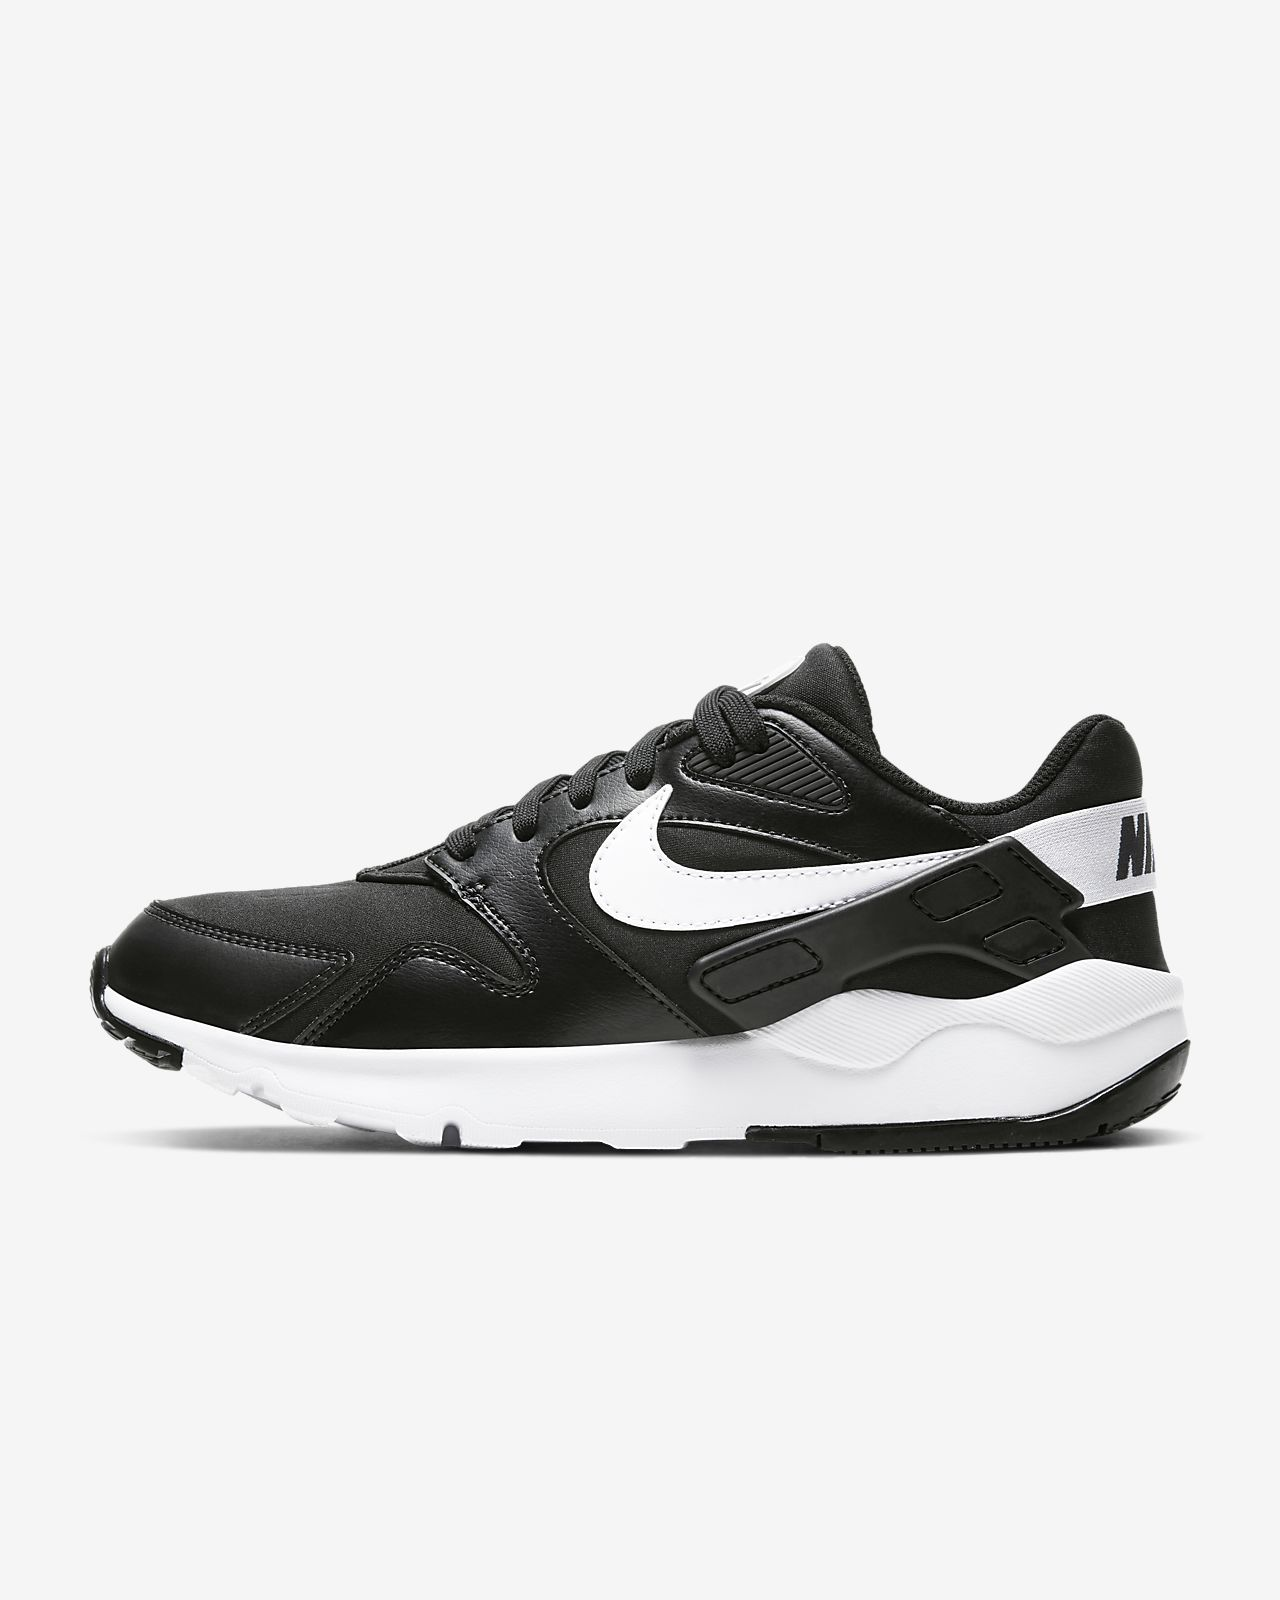 Chaussure Nike LD Victory pour Femme